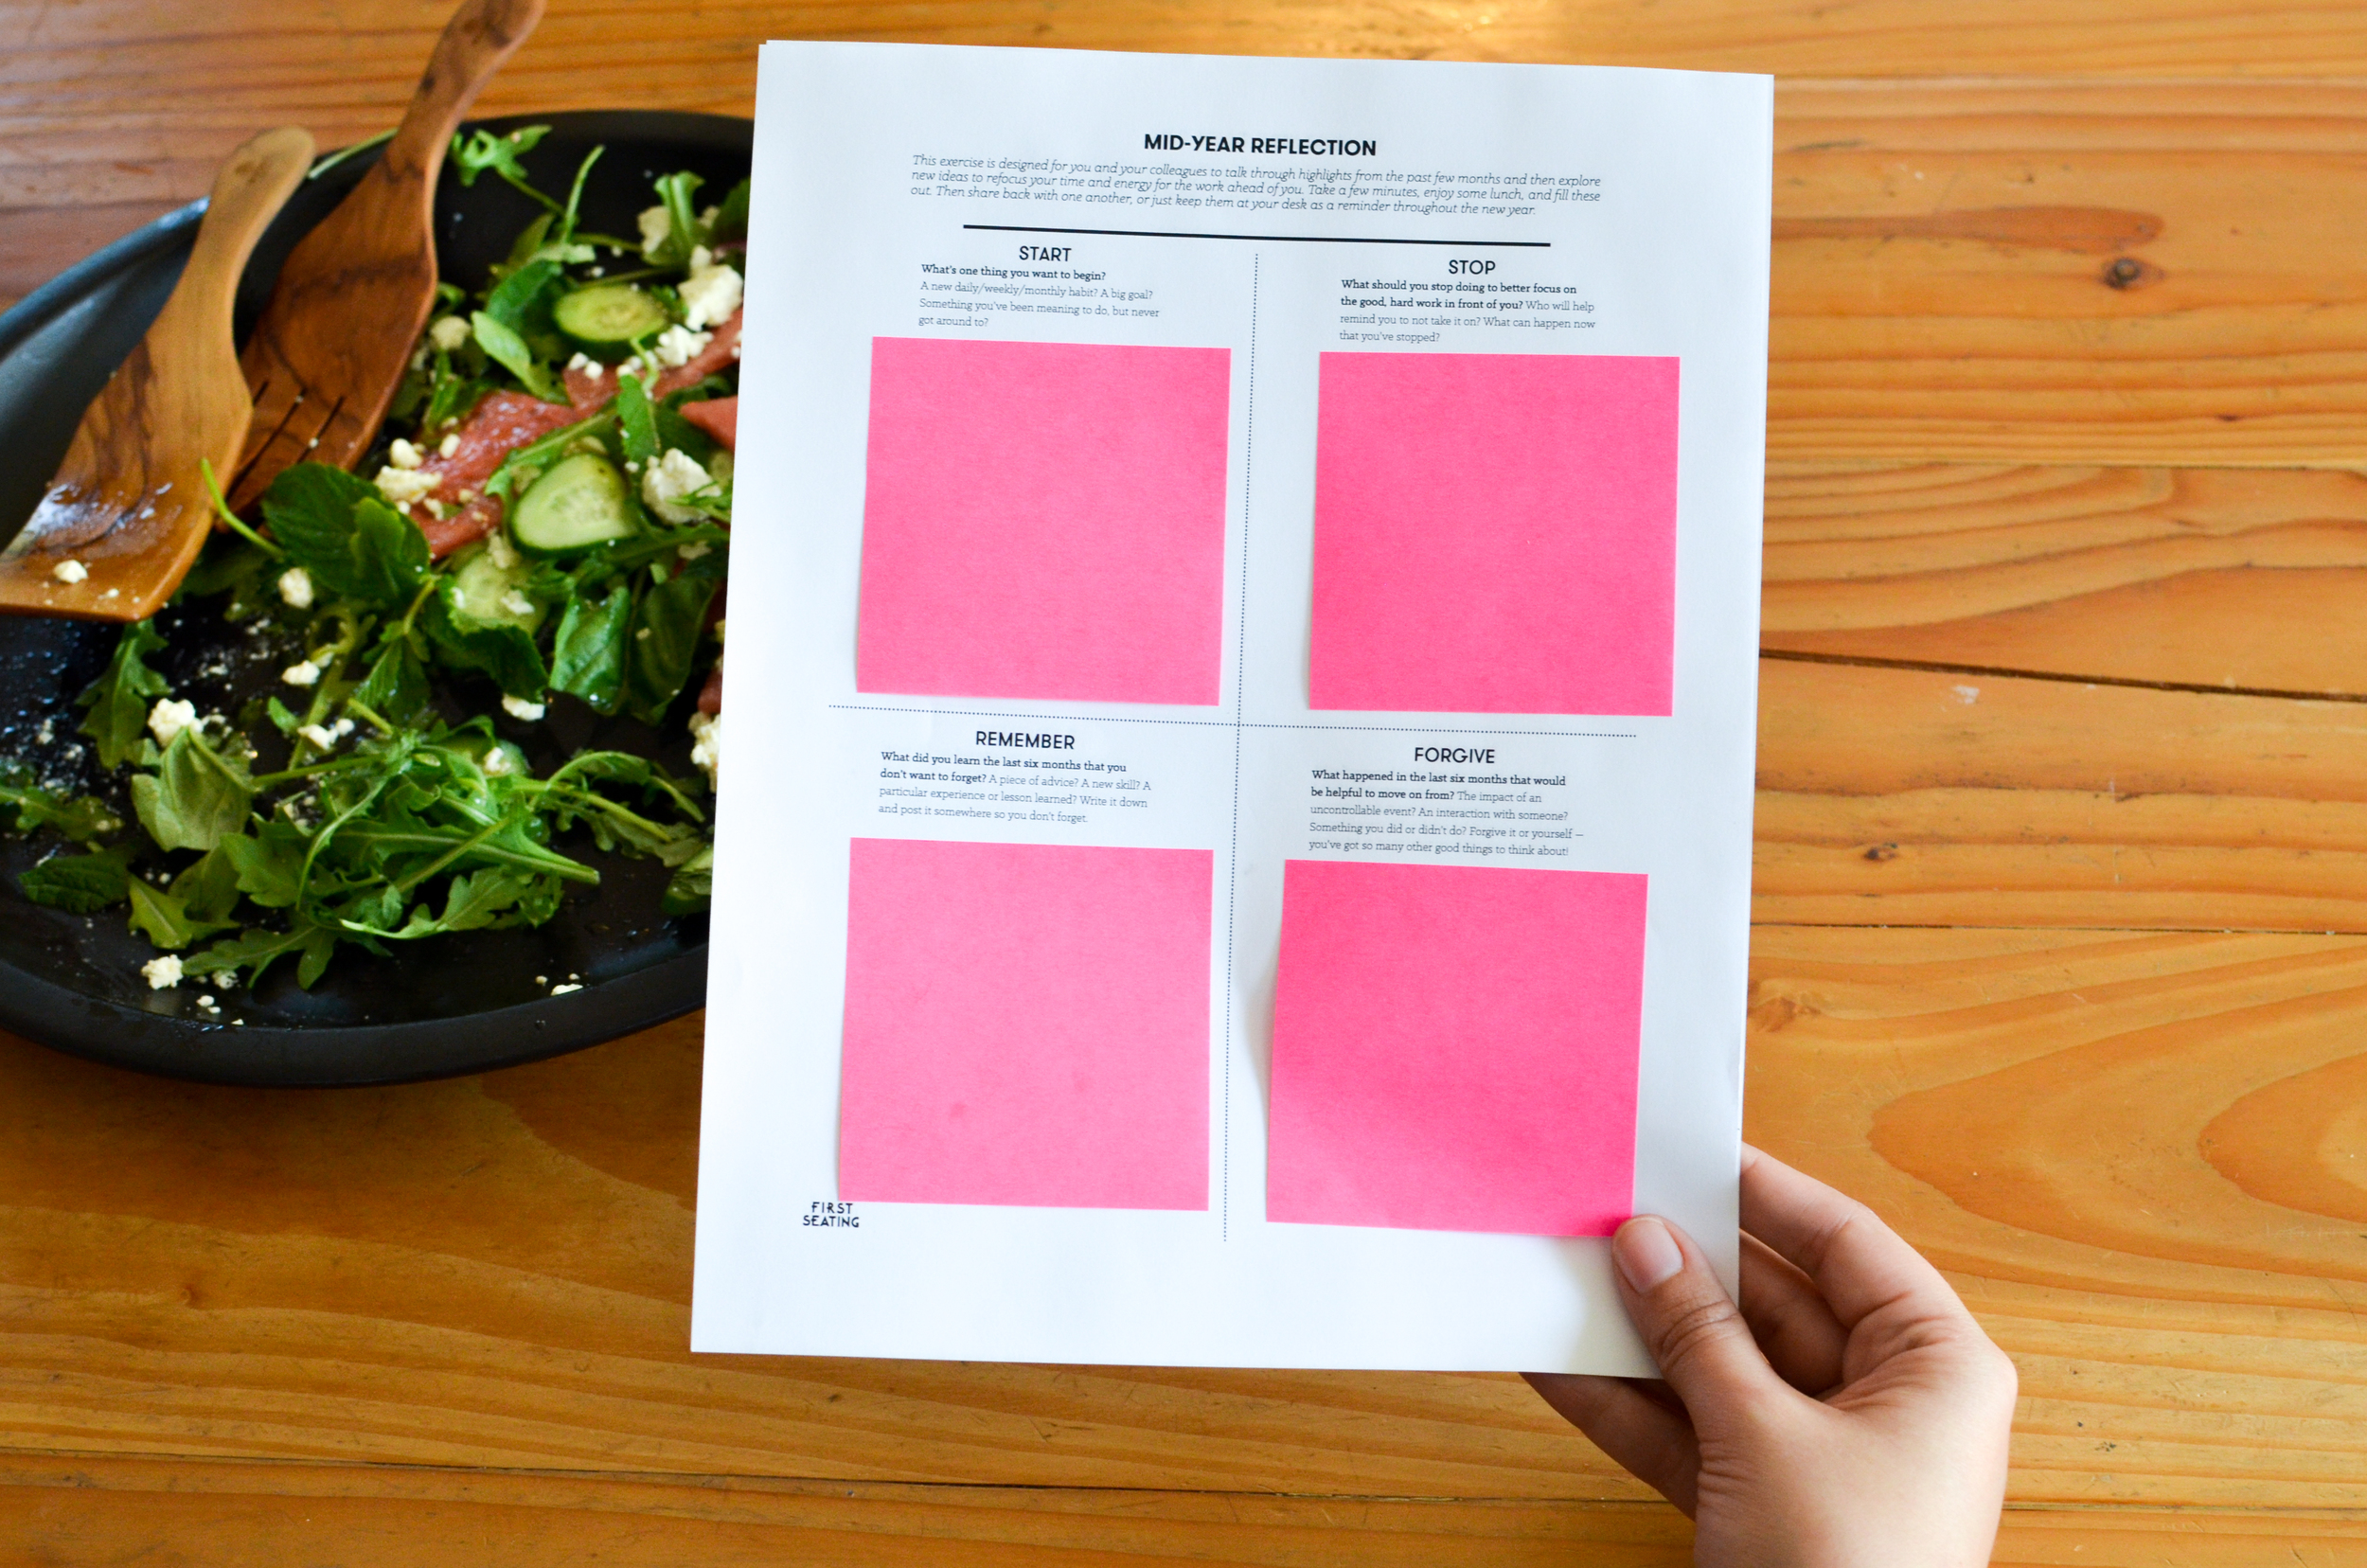 cc midyear reflection worksheet w salad (1 of 1).jpg